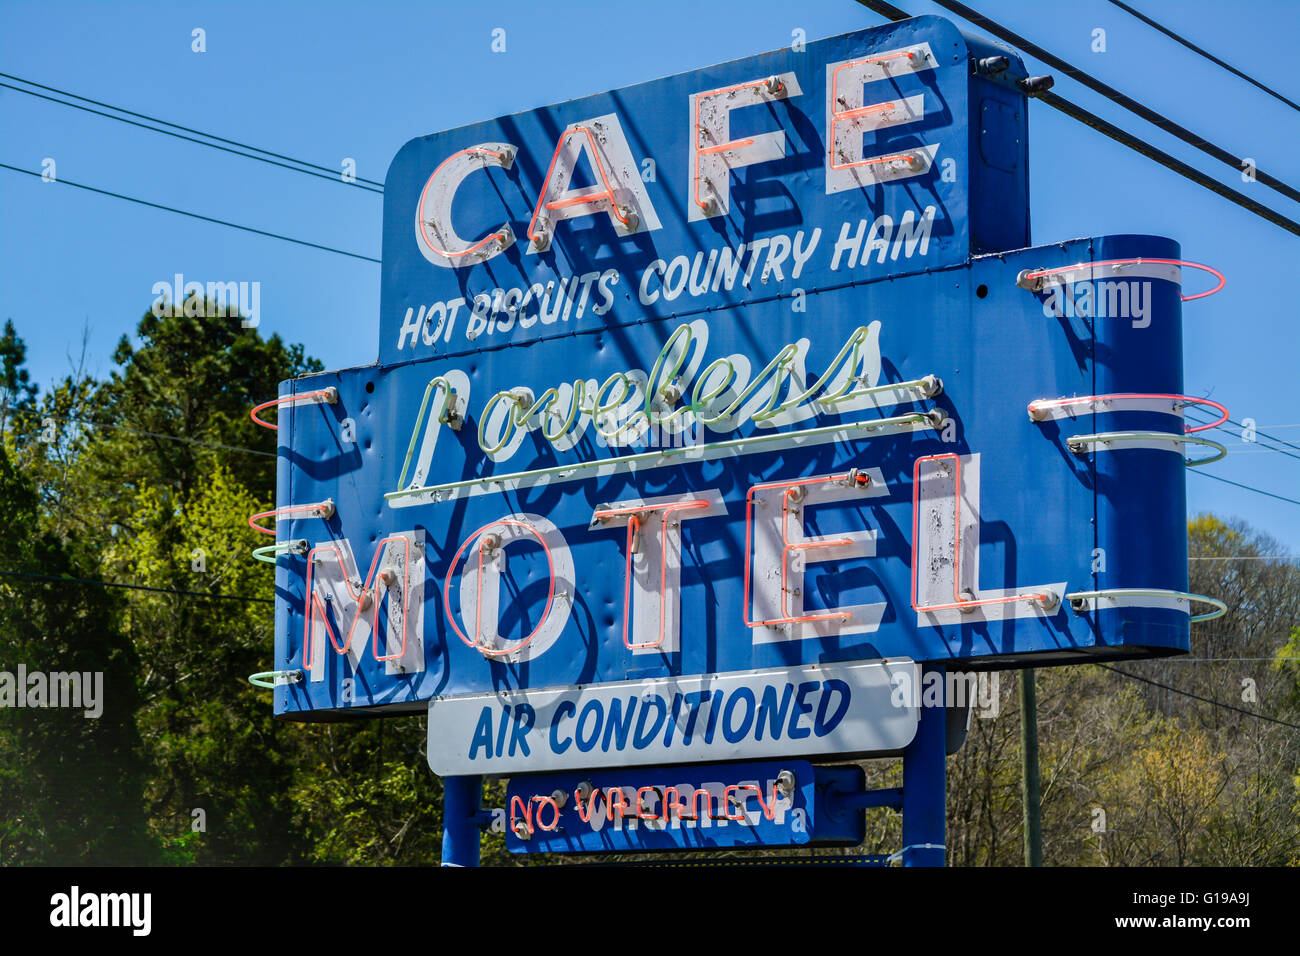 Big blue neon road Sign for the famous Loveless Motel and Cafe near Nashville, TN, famous for their Hot Biscuits - Stock Image